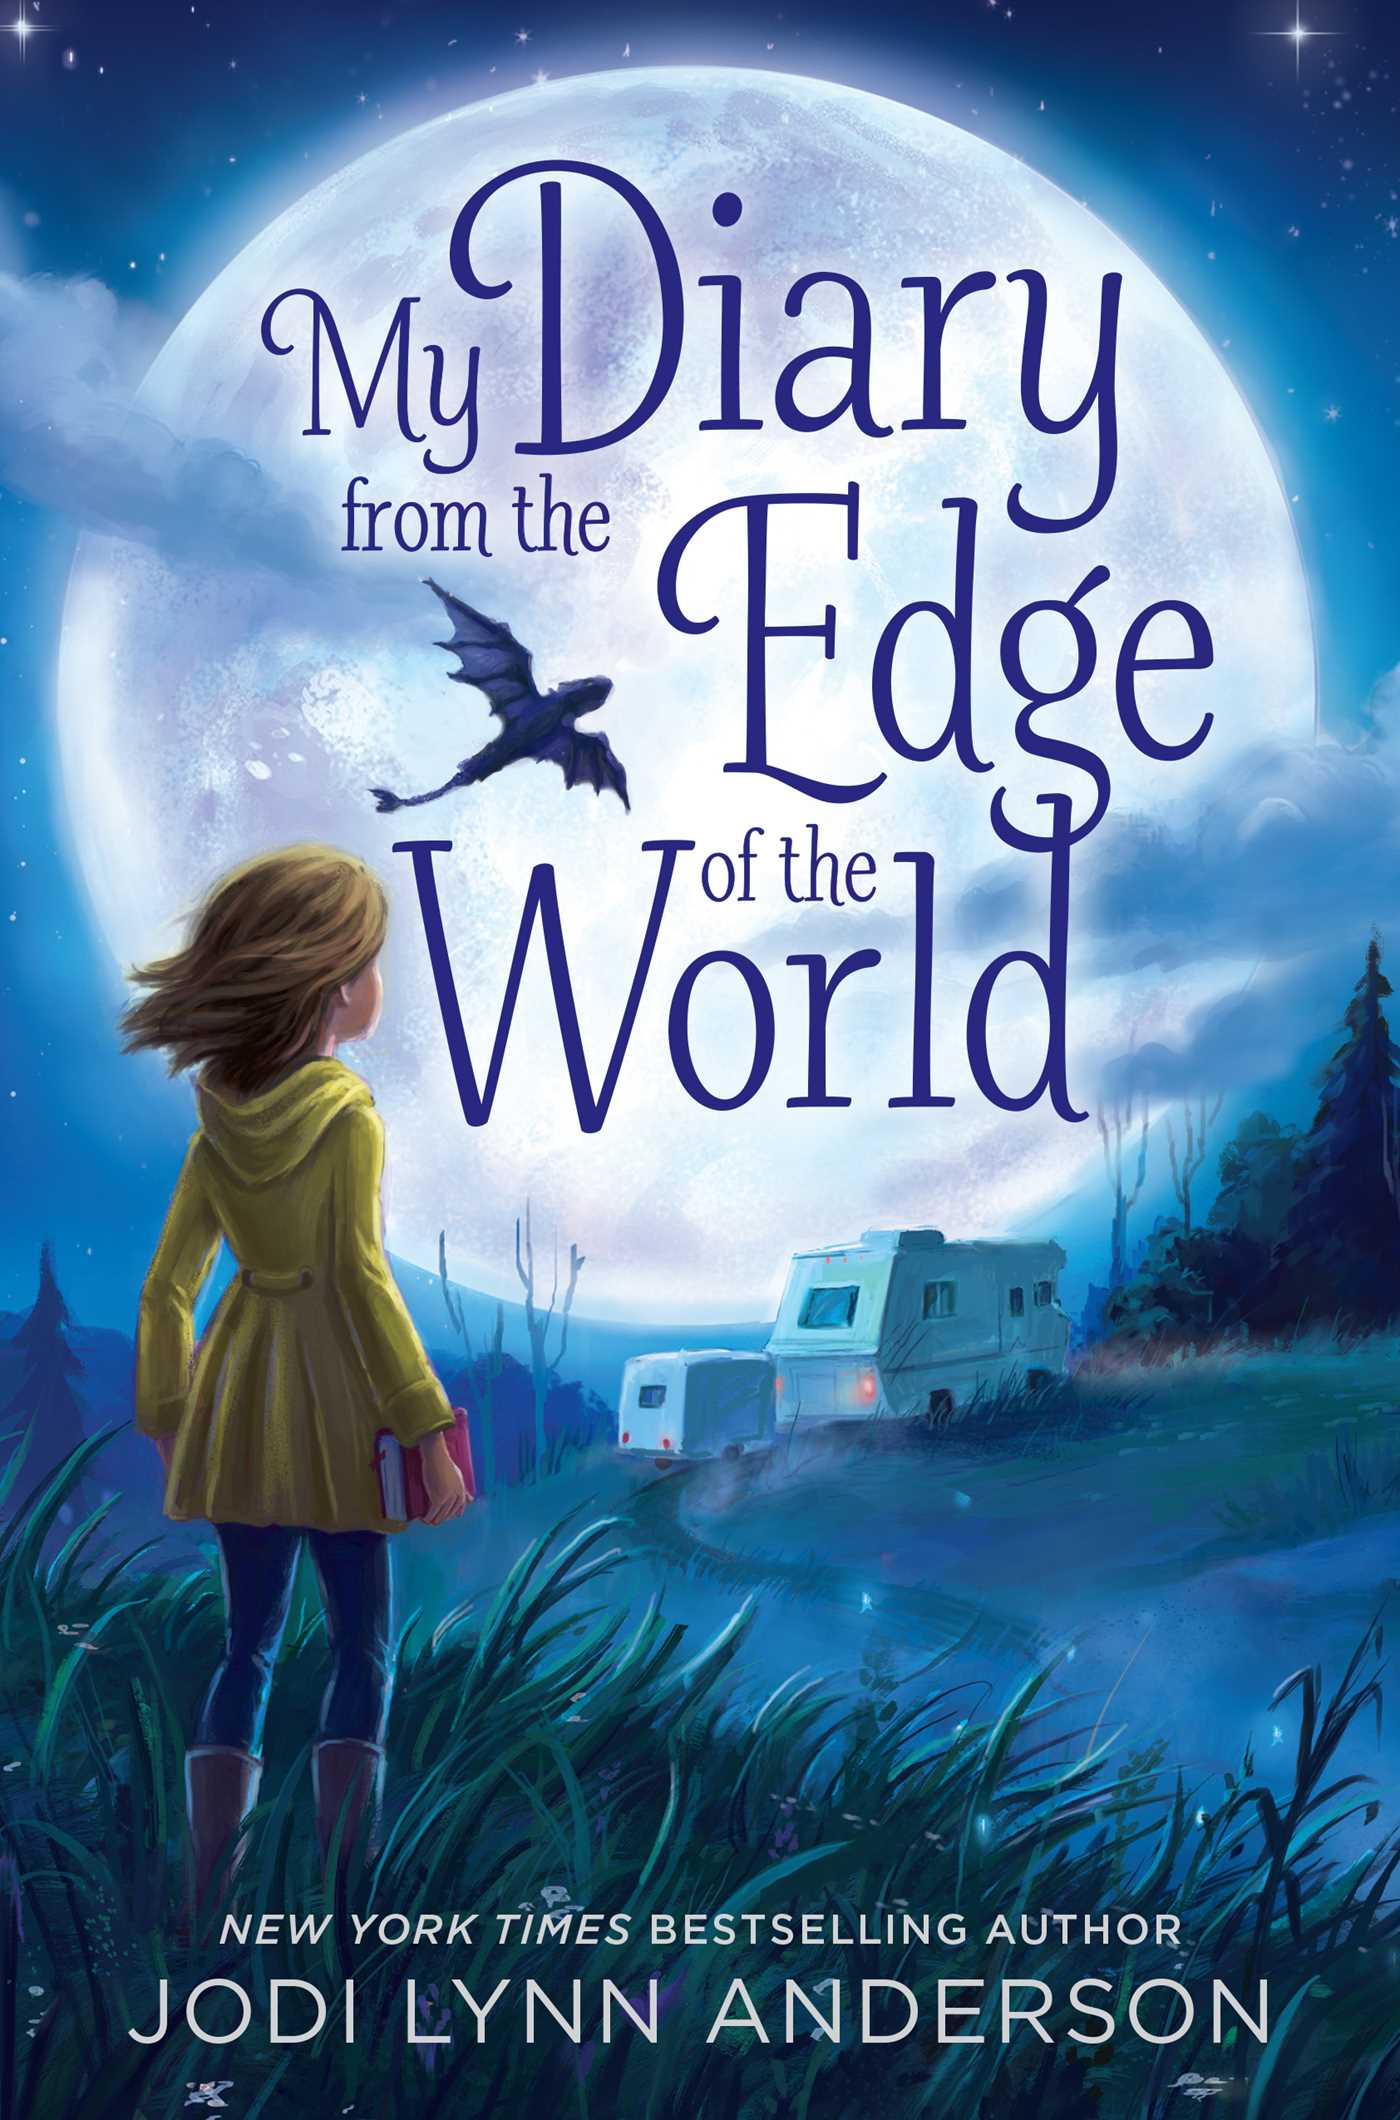 My diary from the edge of the world 9781442483873 hr